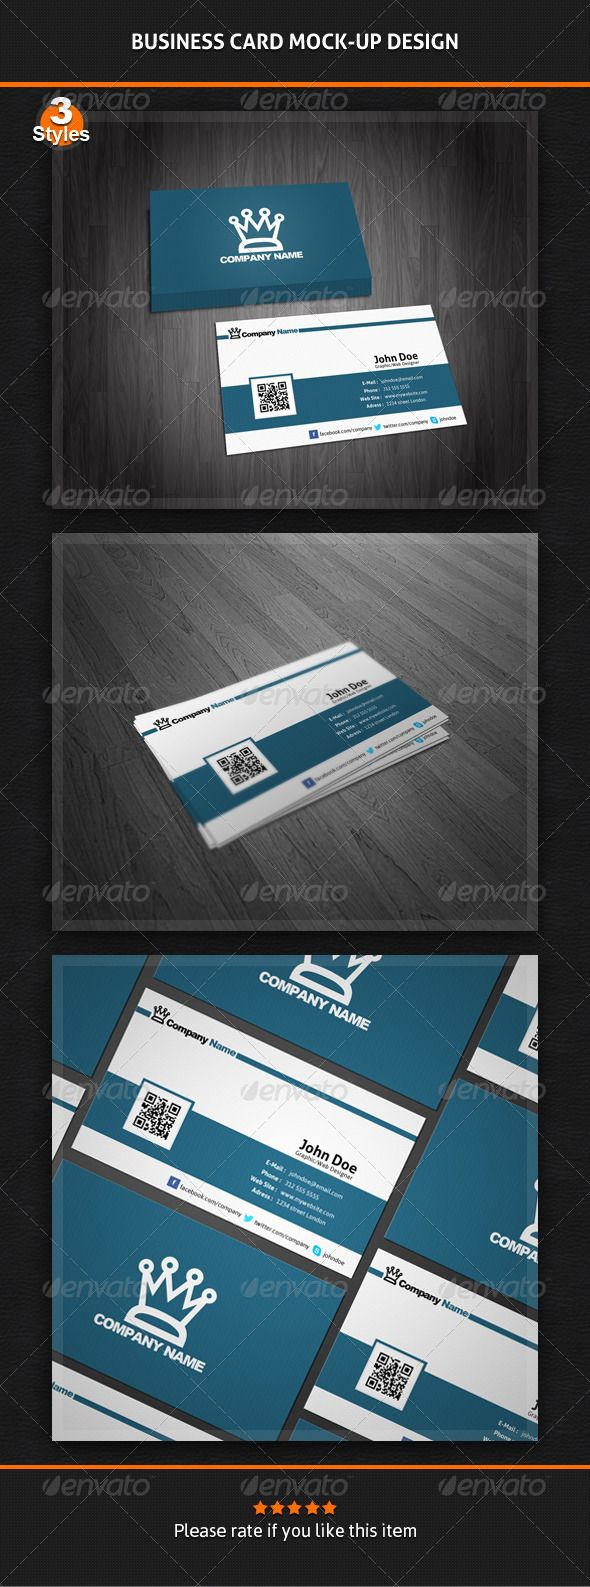 Business card mock up pack 3 styles mockup business cards and business card mock up pack 3 styles magicingreecefo Gallery